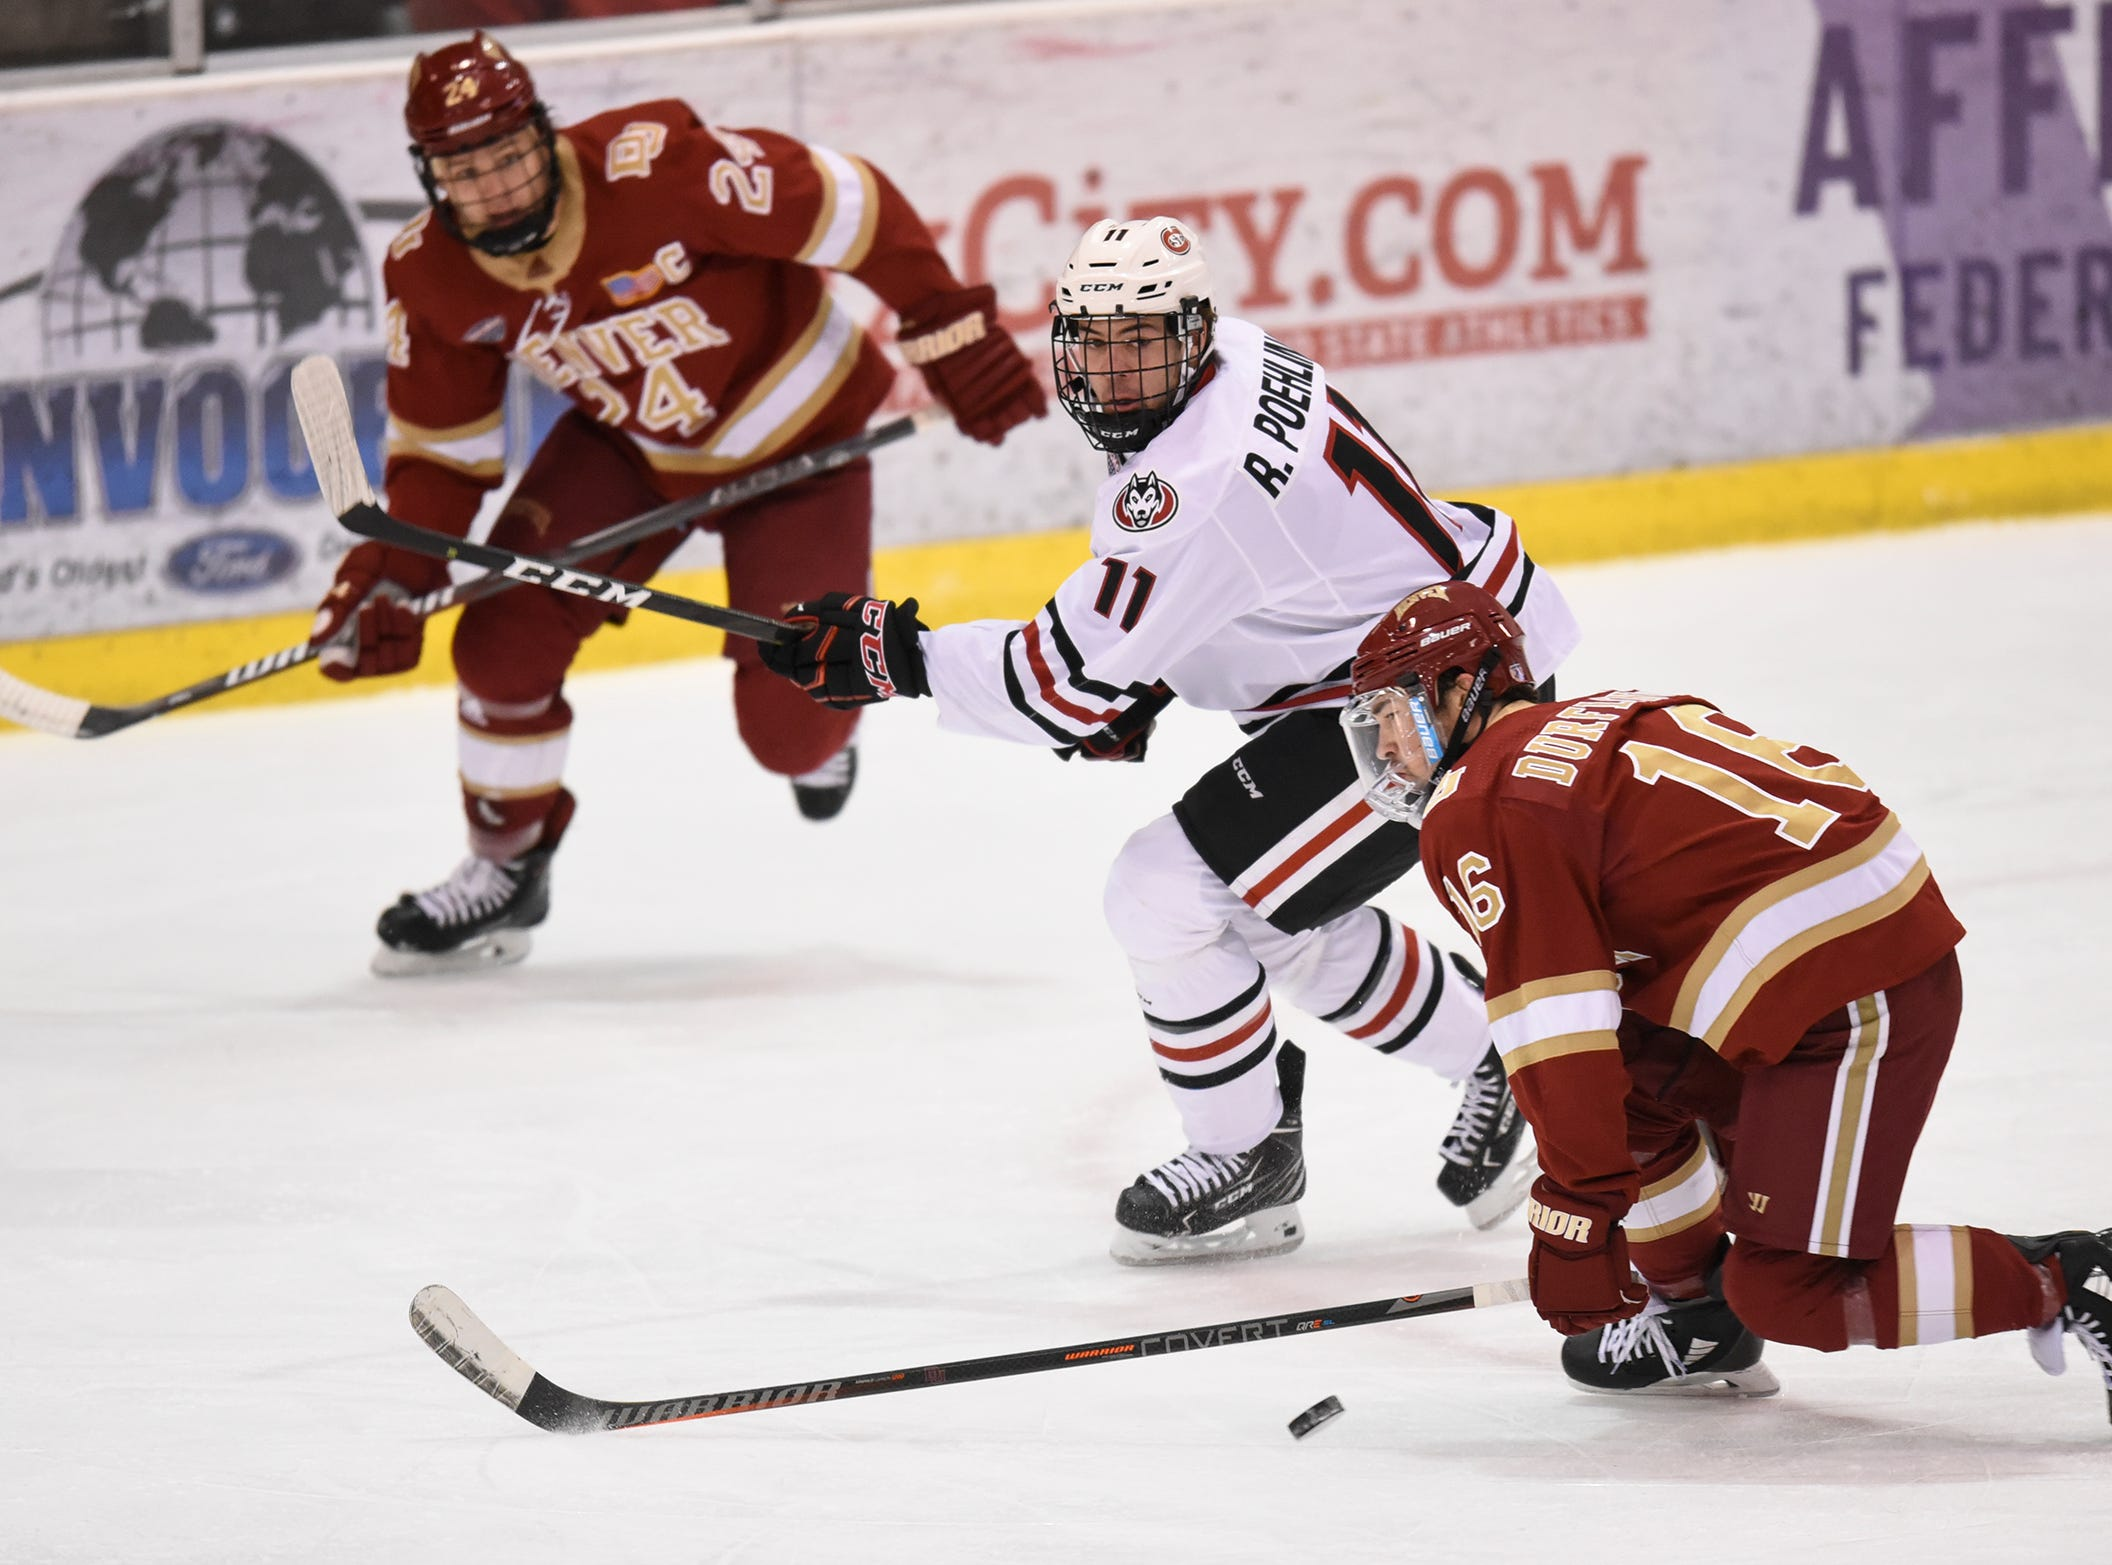 Ryan Poehling concentrates on the puck during the first period of the Saturday, Nov. 10, game against the University of Denver at the Herb Brooks National Hockey Center in St. Cloud.